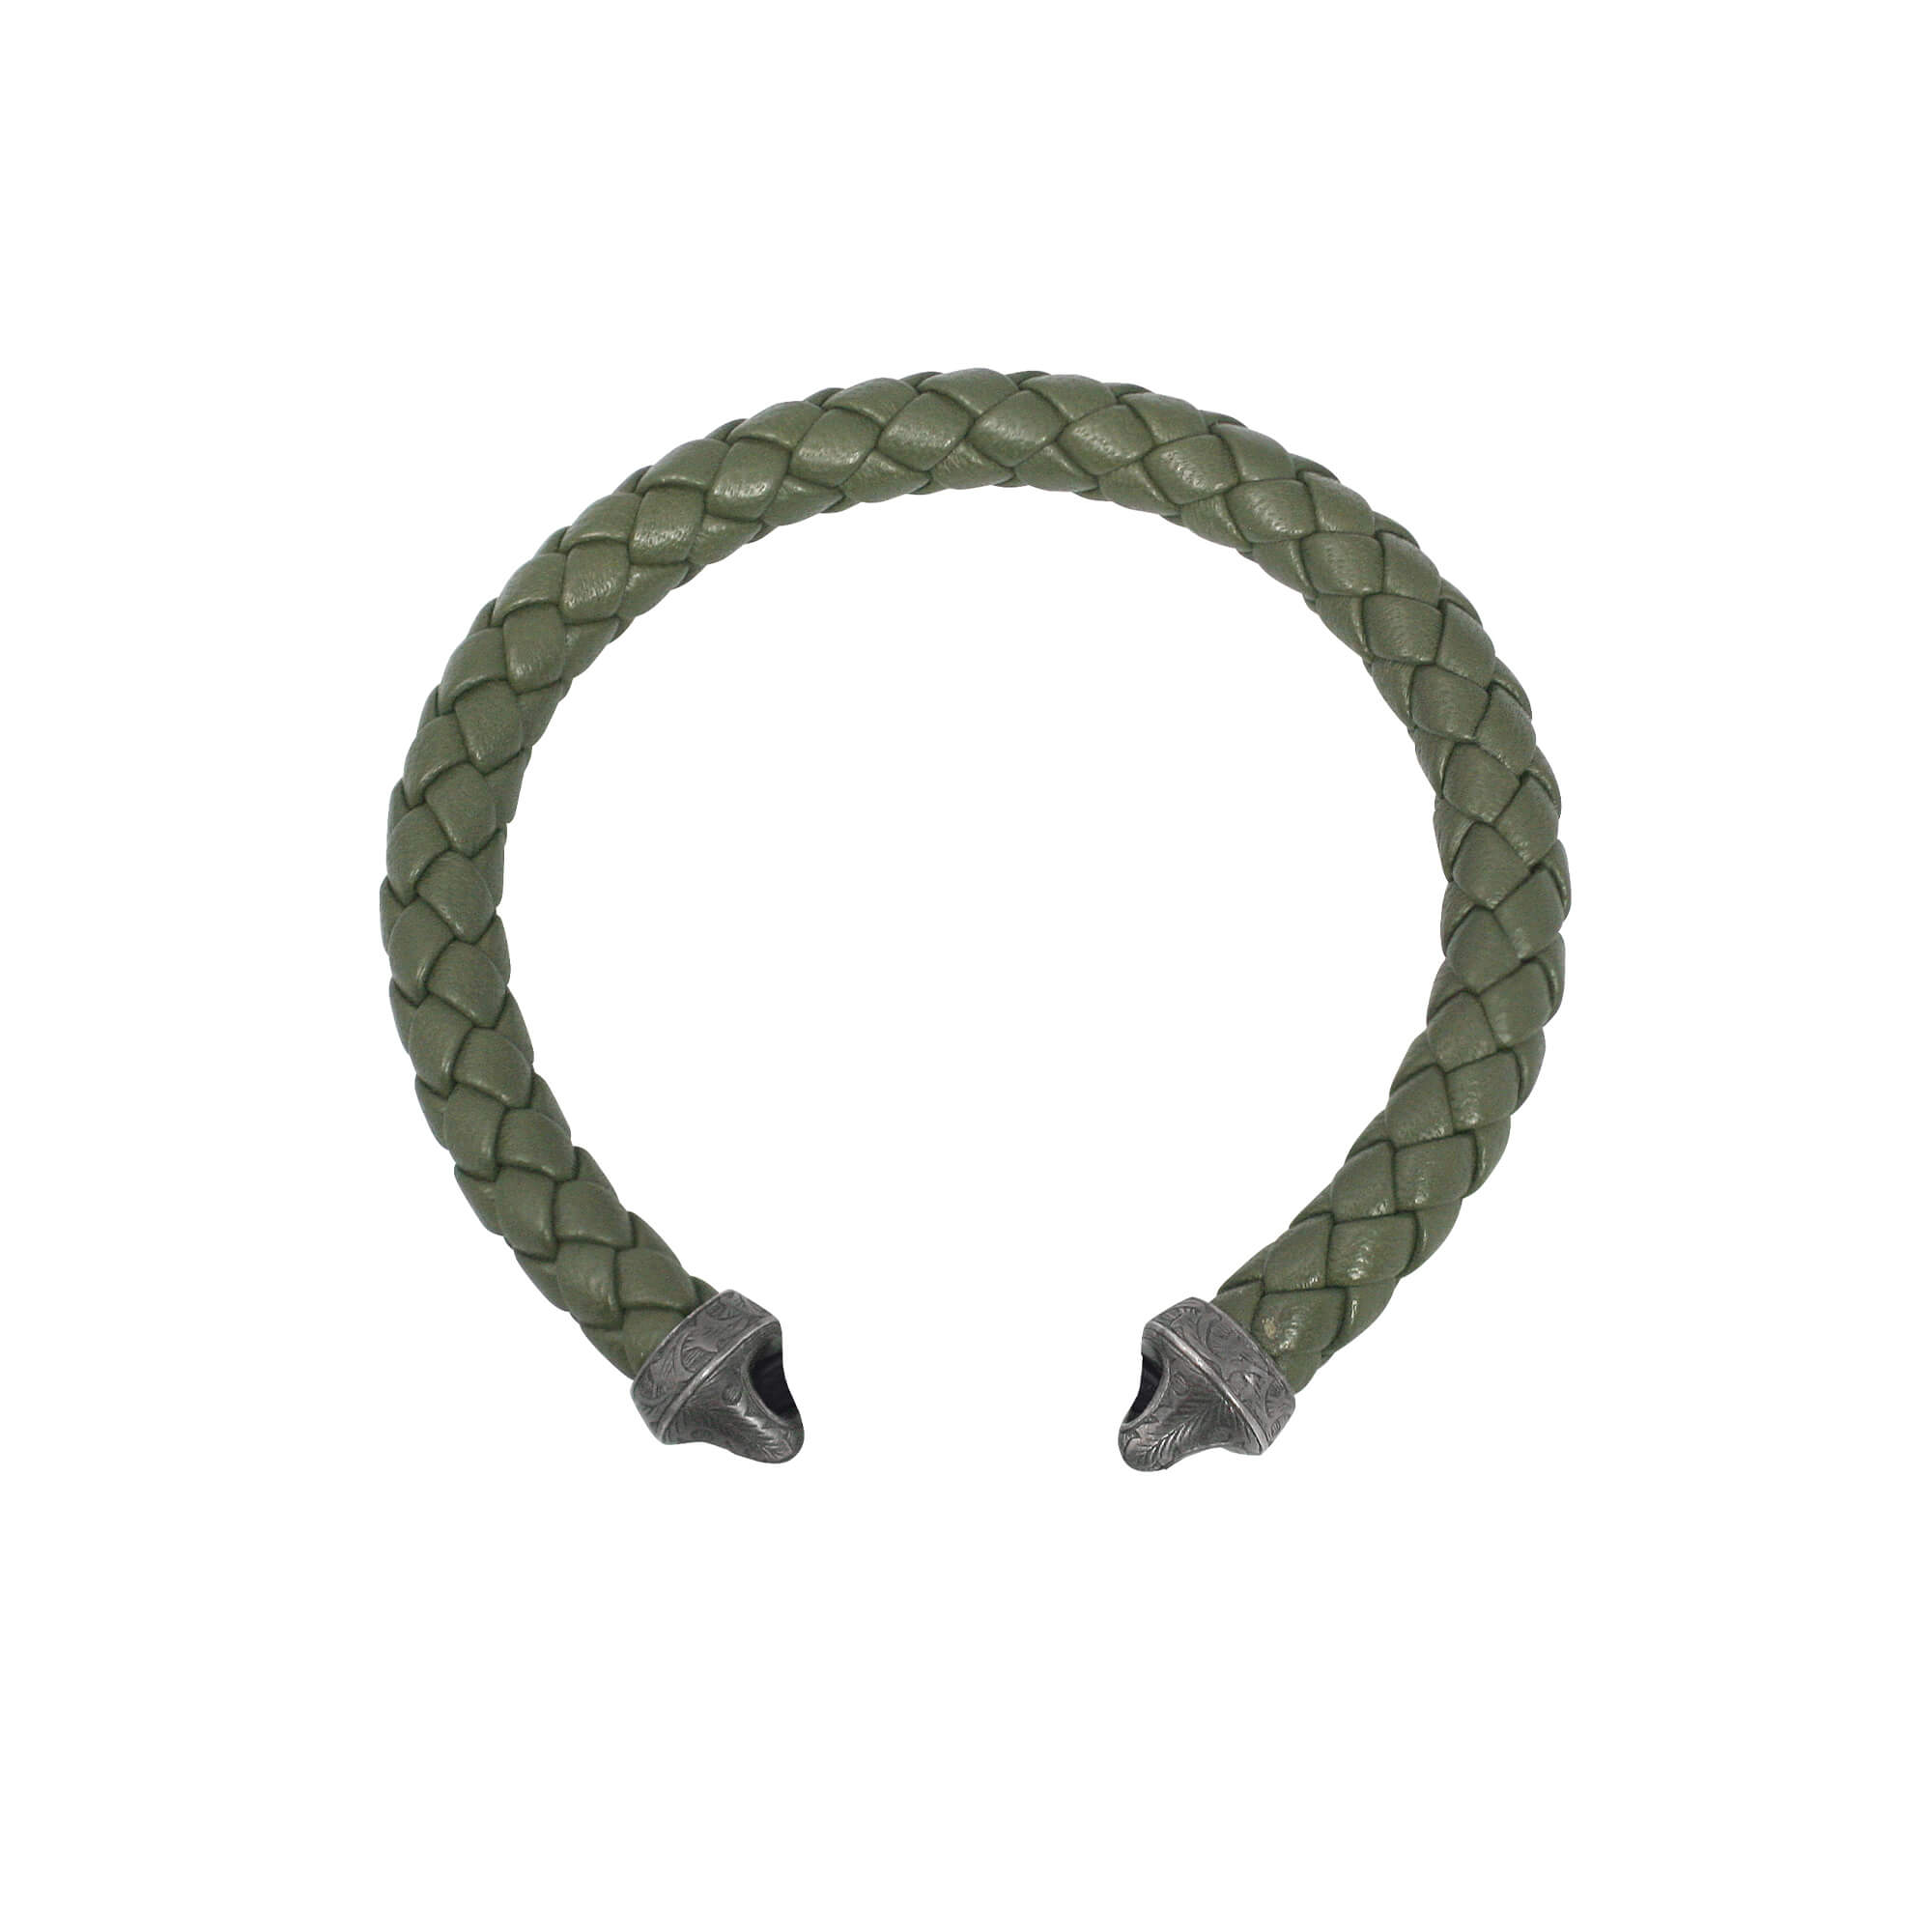 Green Leather Bracelet Strap | England Made Me